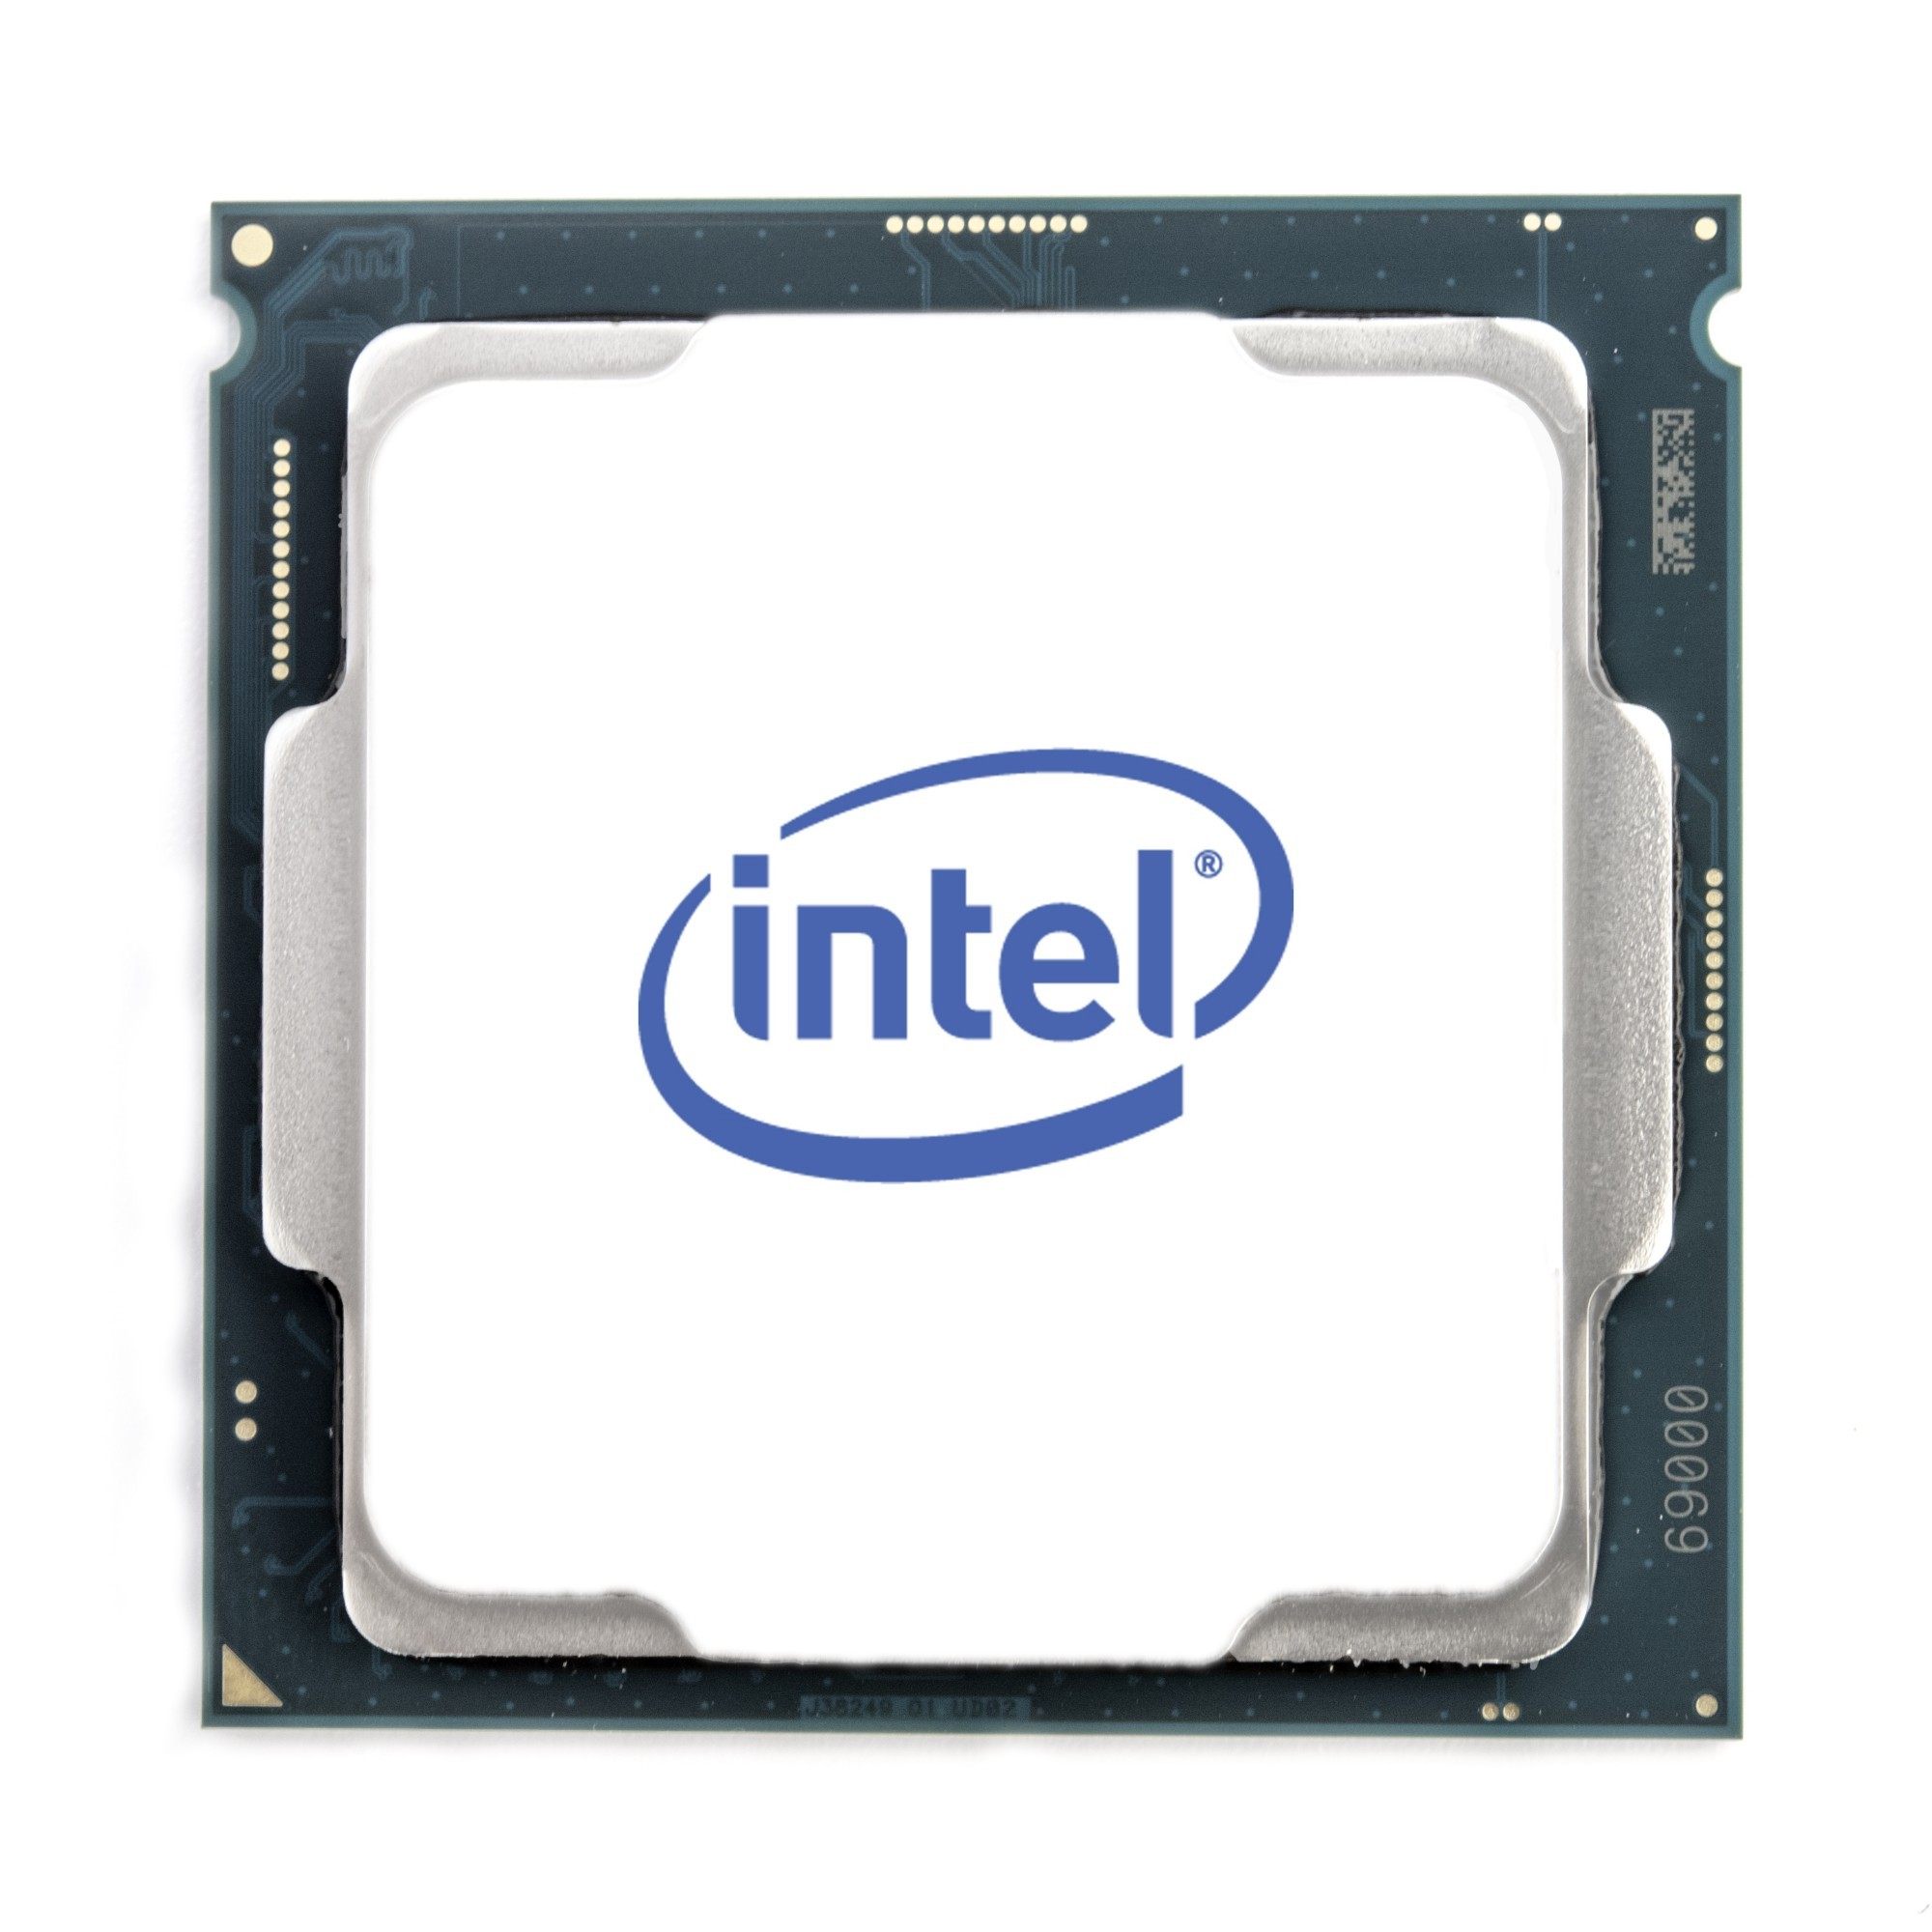 INTEL CM8068403653917 XEON E-2104G PROCESSOR 3.2 GHZ 8 MB SMART CACHE (TRAY ONLY PROCESSOR)